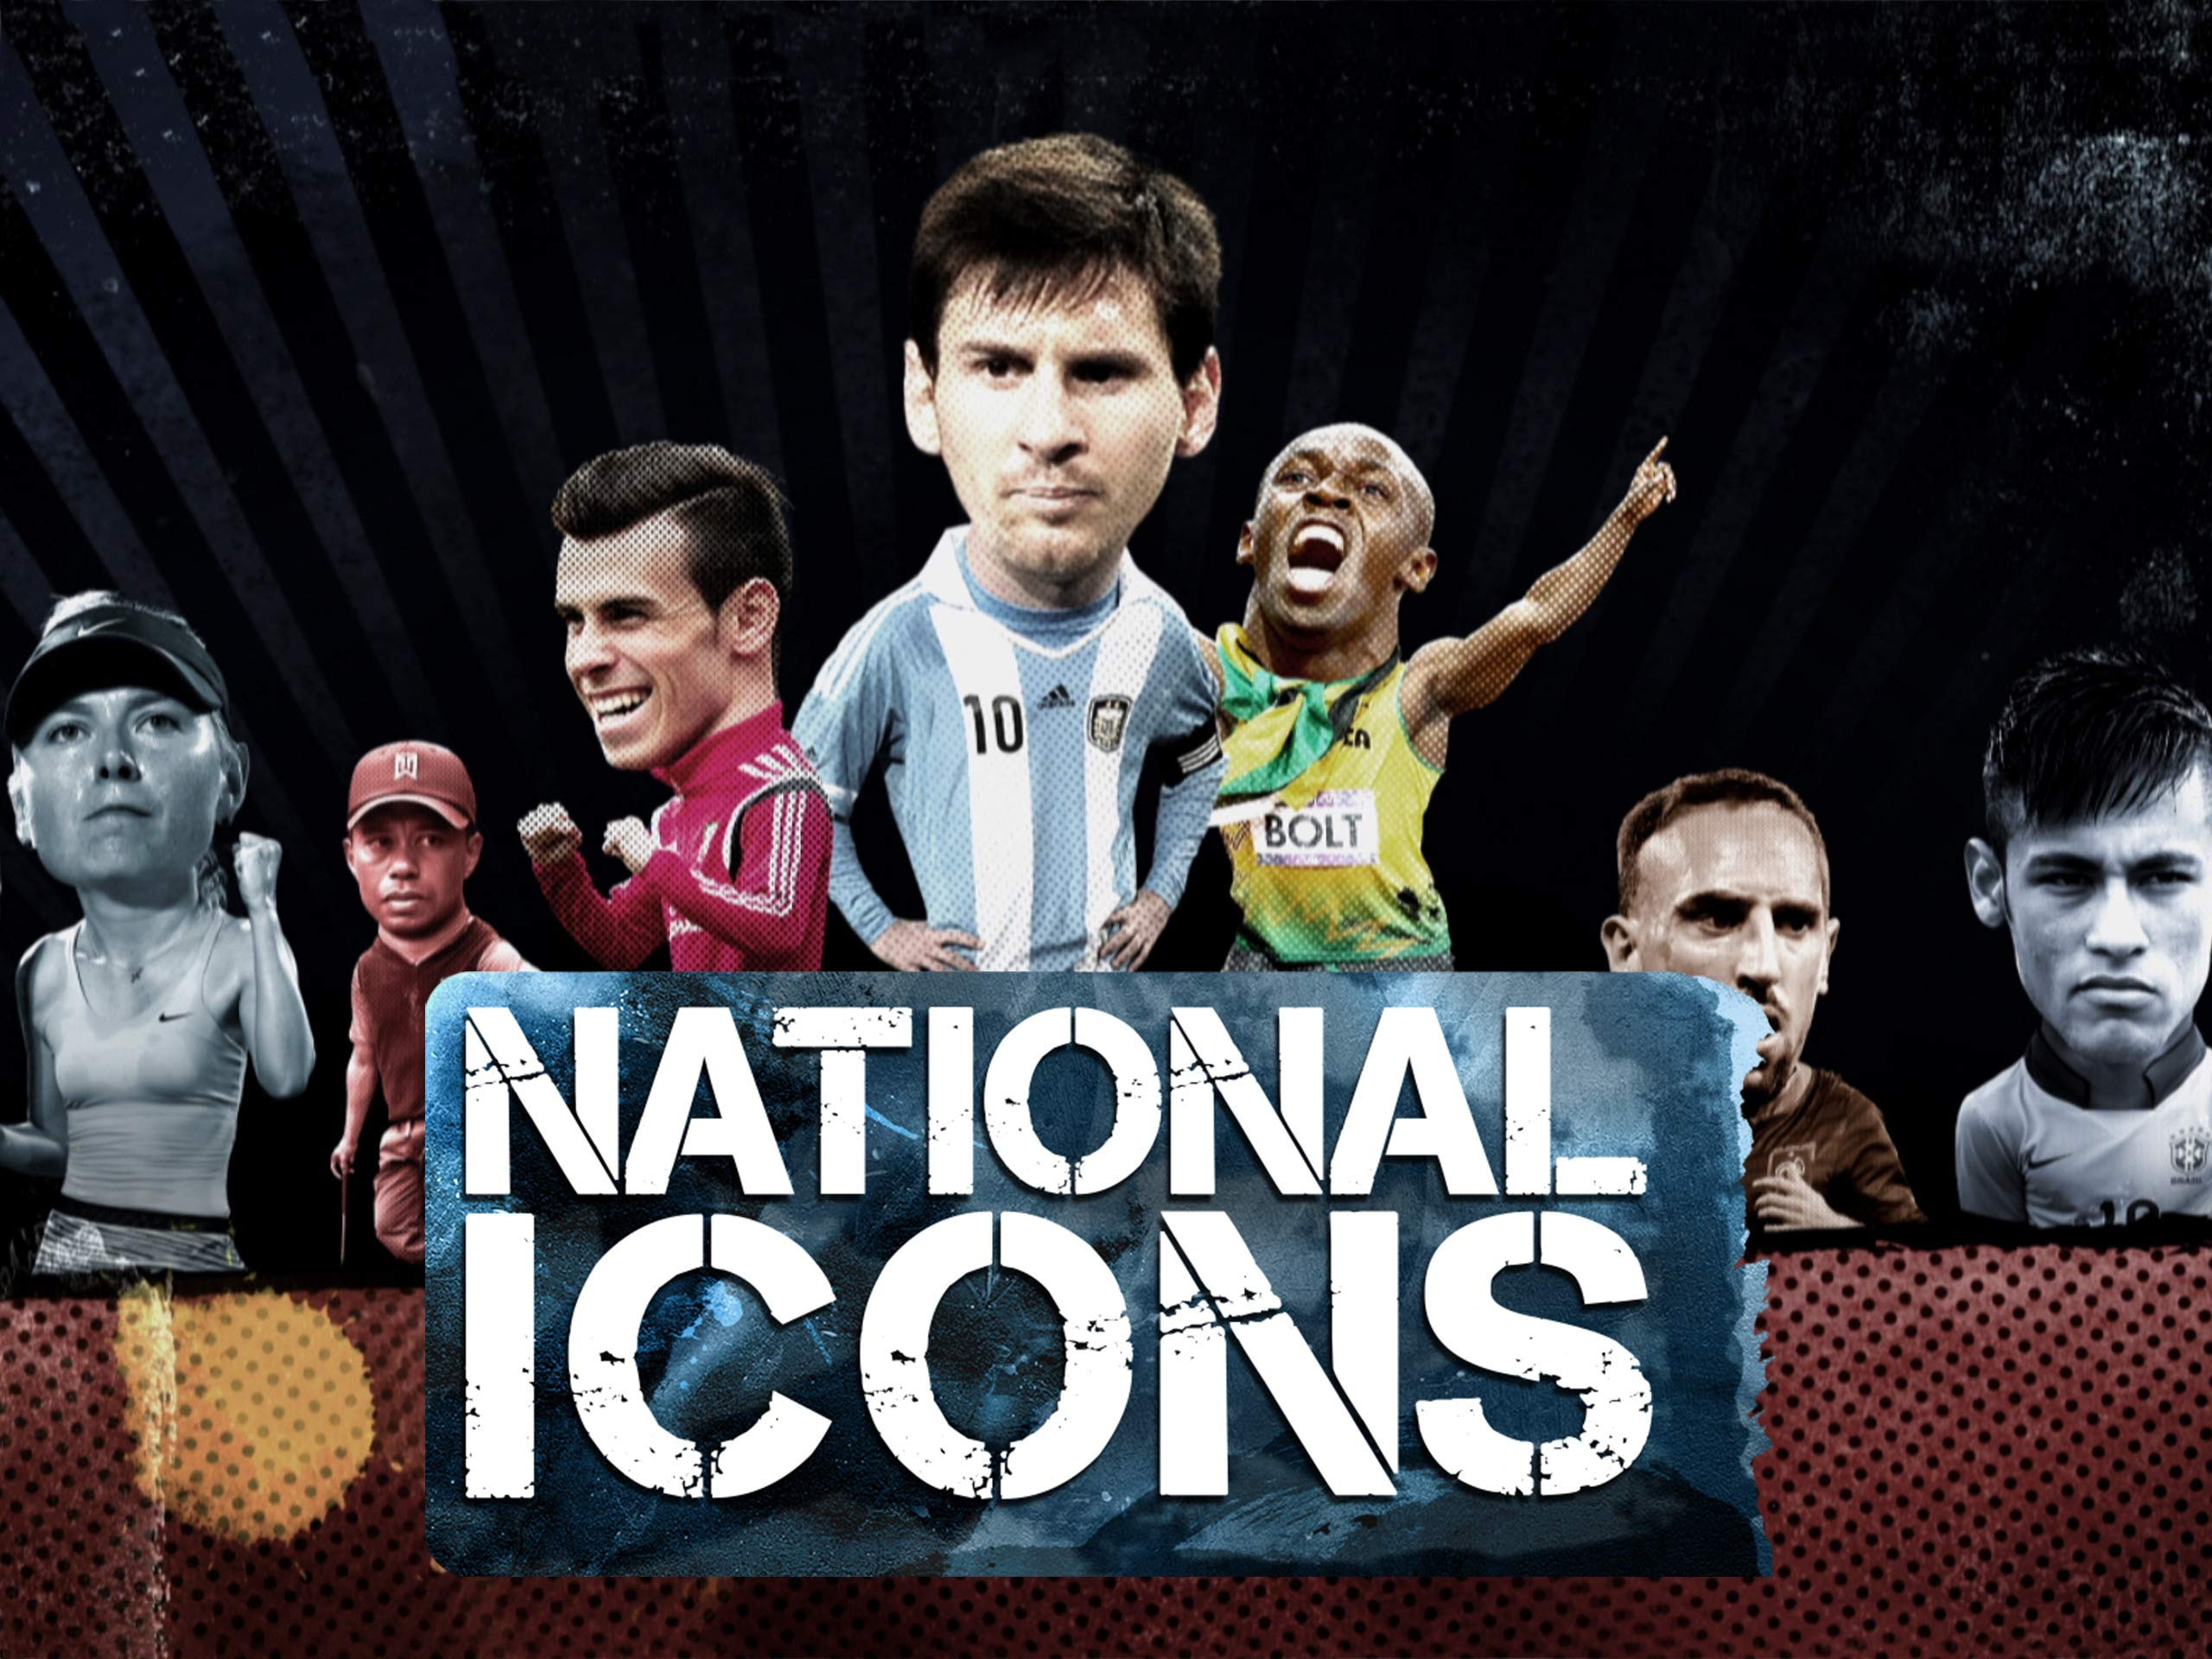 National Icons - Season 7